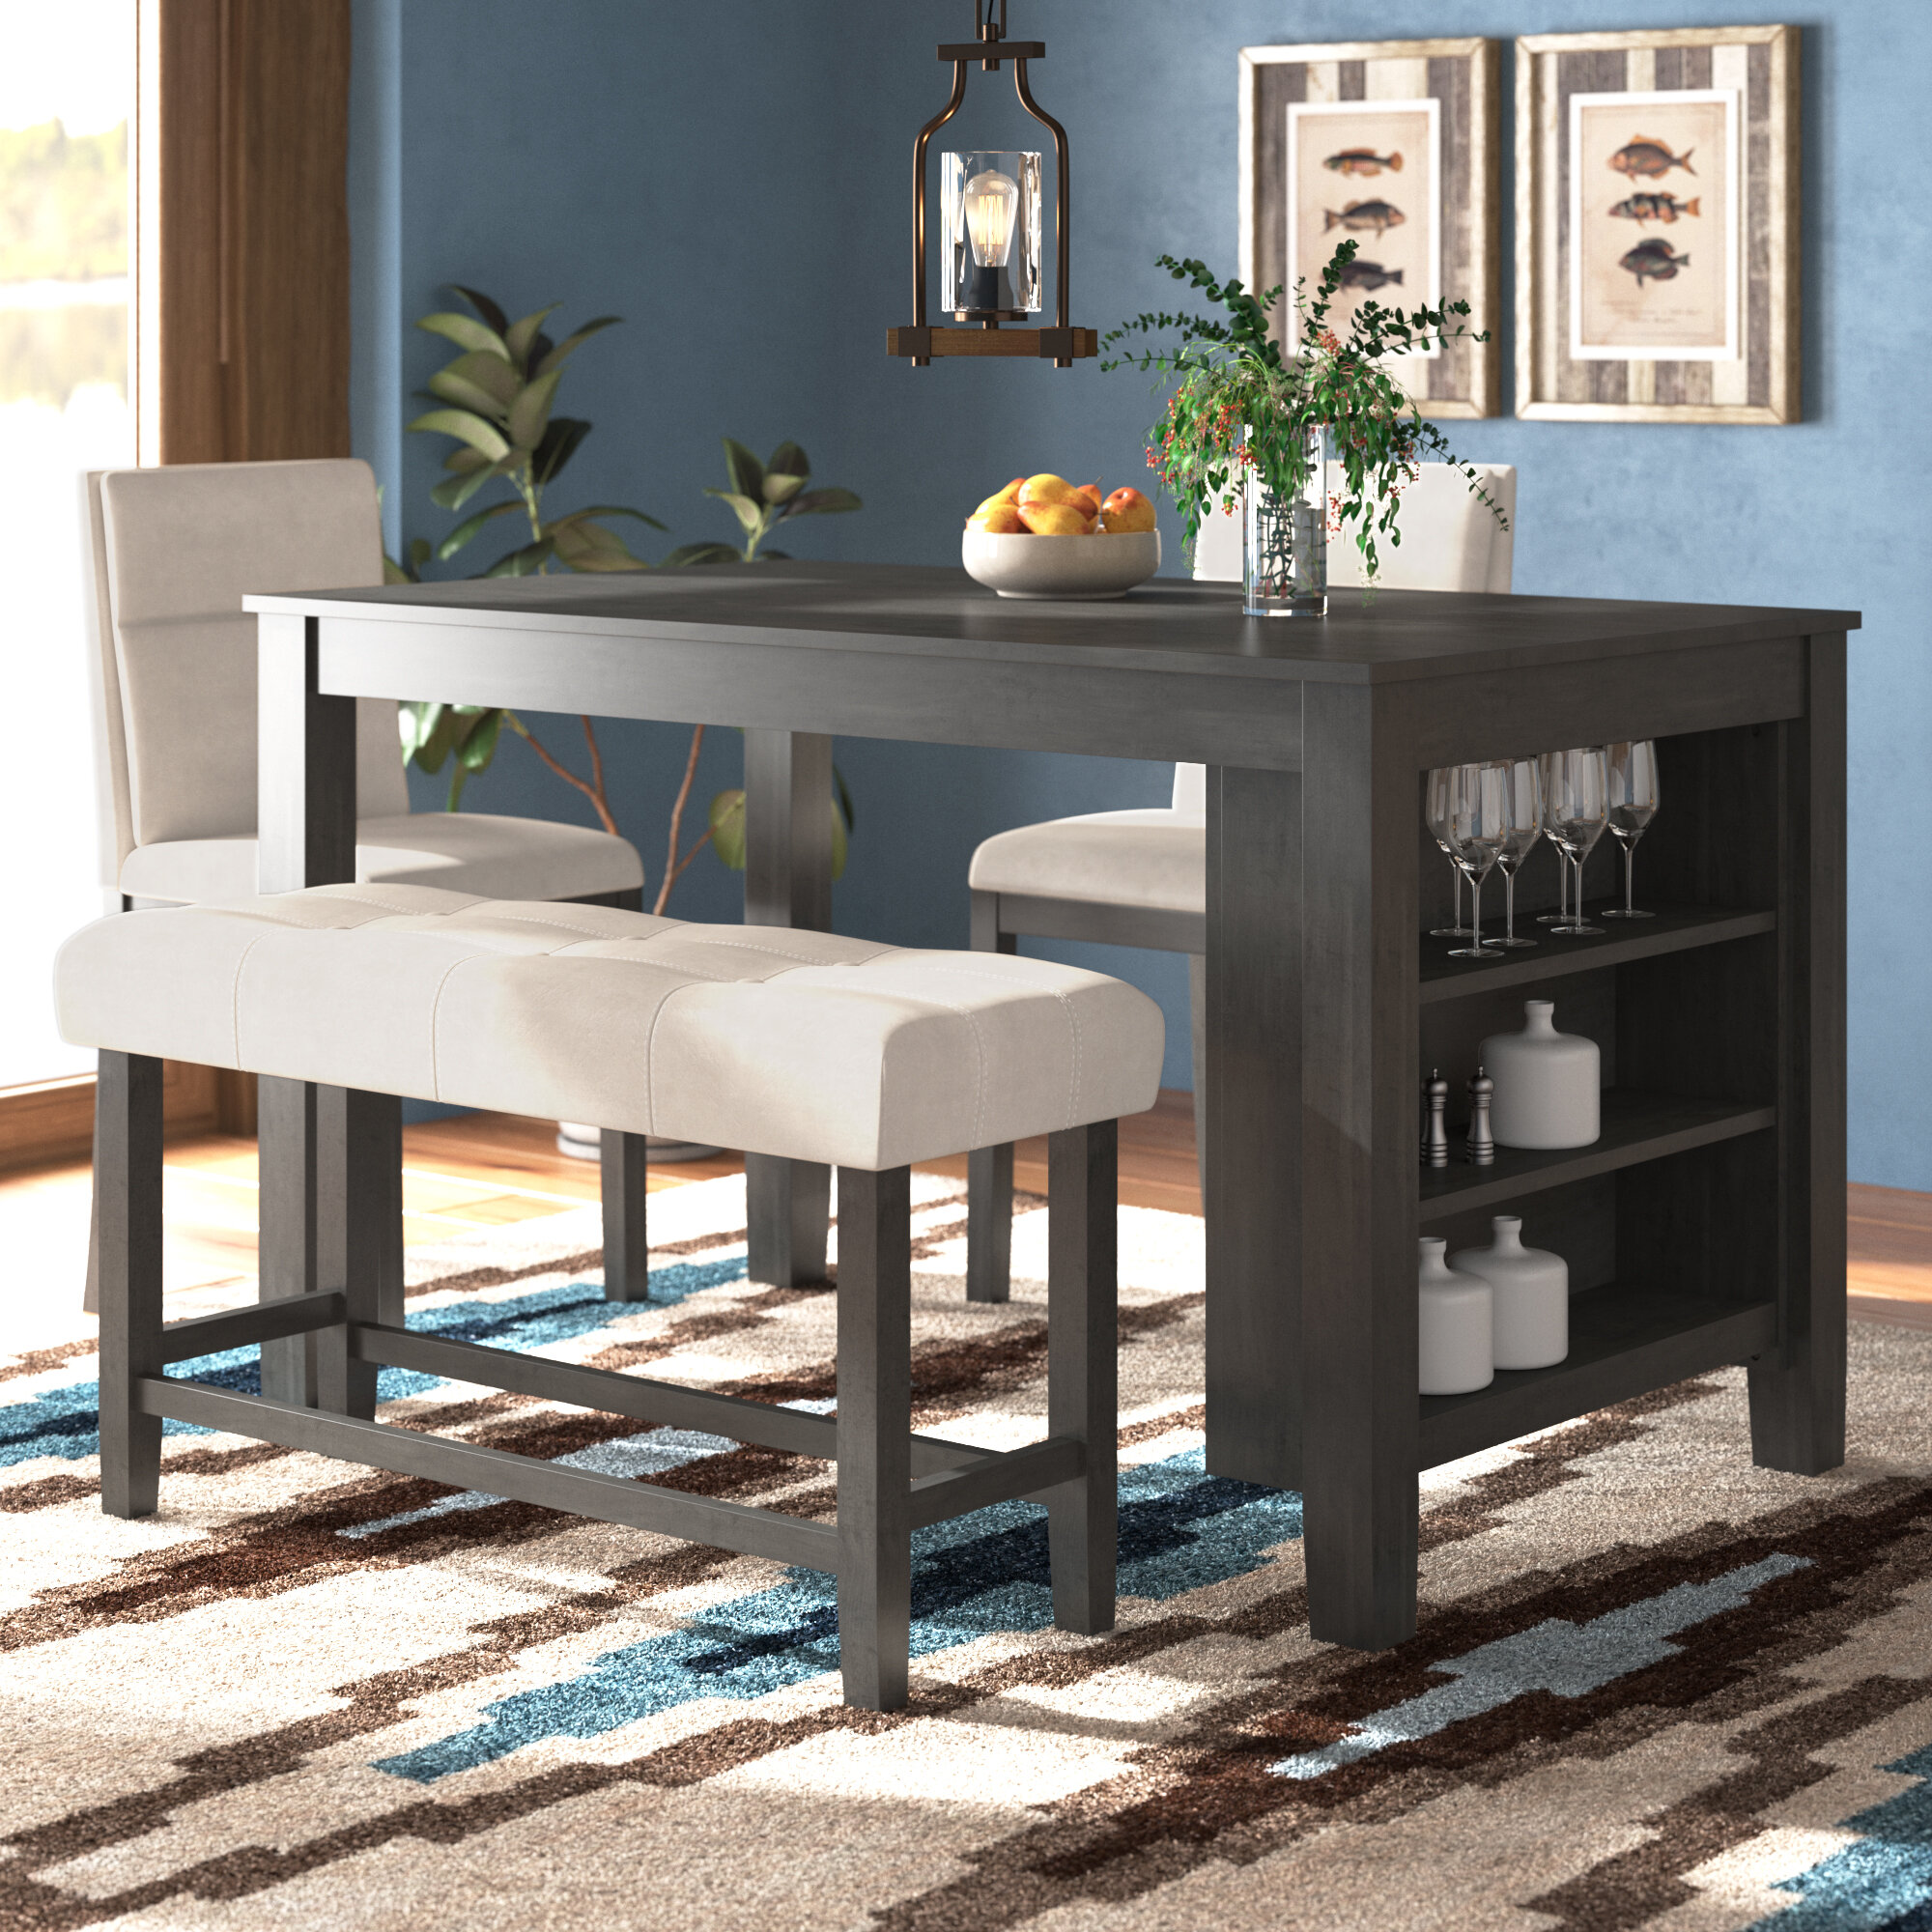 Picture of: Rustic Kitchen Dining Room Sets You Ll Love In 2020 Wayfair